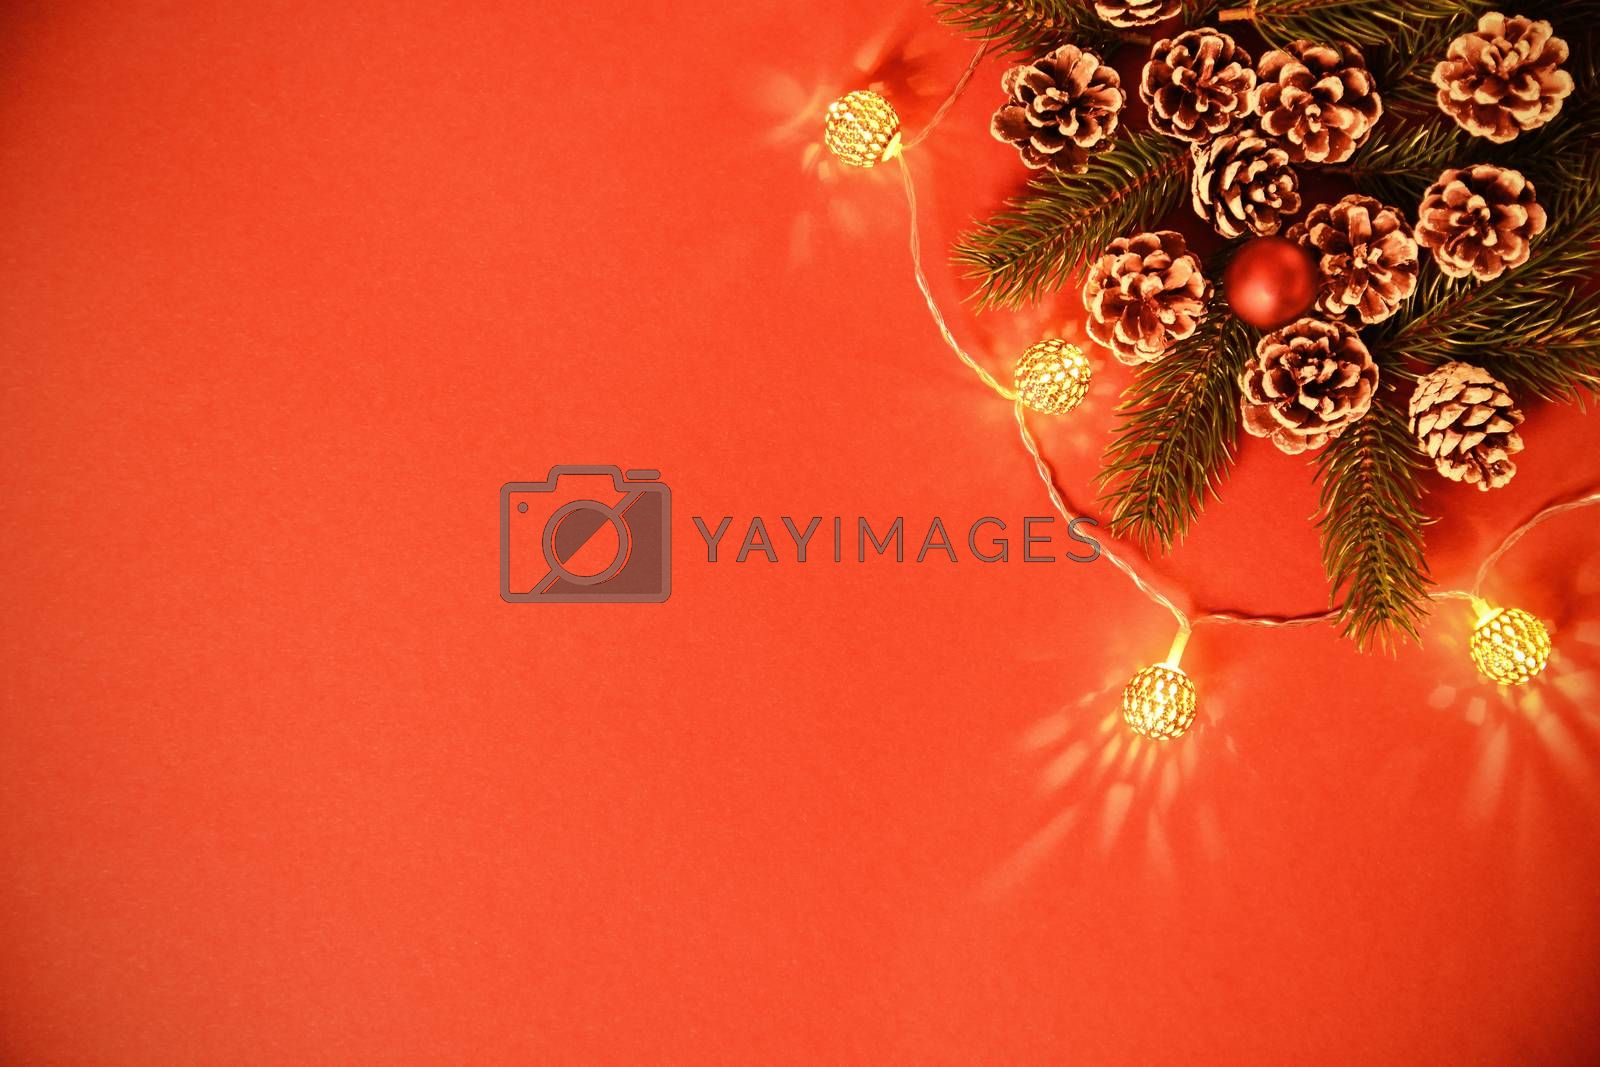 Christmas and New Year composition. Seasonal greeting card concept with pinecones, evergreen branches and lights on red background. Christmas, winter, new year concept. Flat lay, top view, copy space.